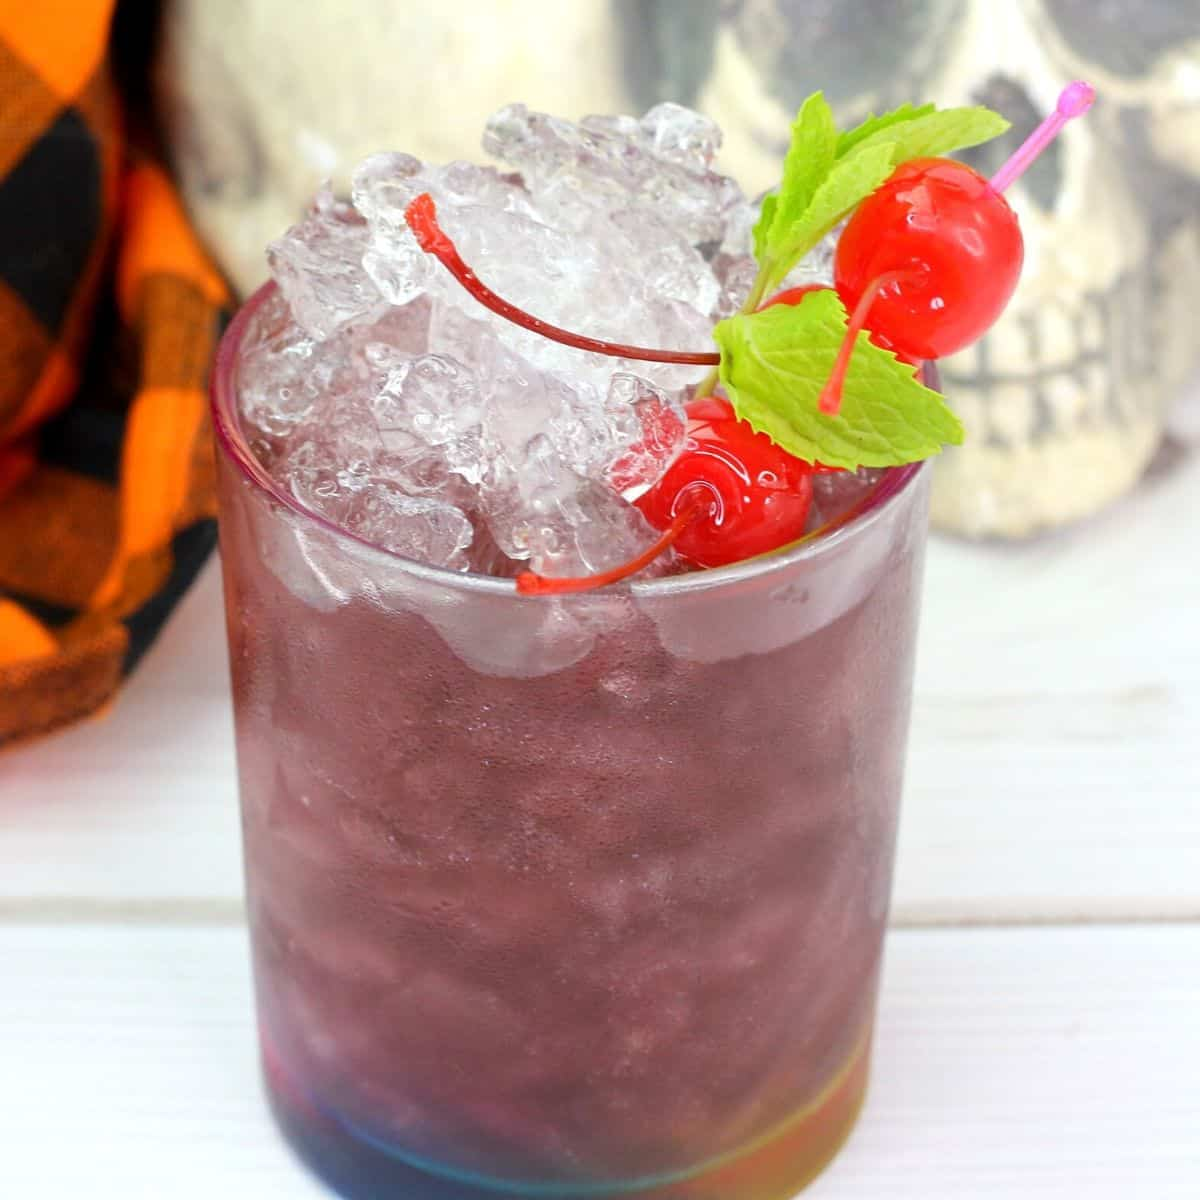 A purple cocktail with silver shimmer garnished with cherries and mint next to a Halloween skull.